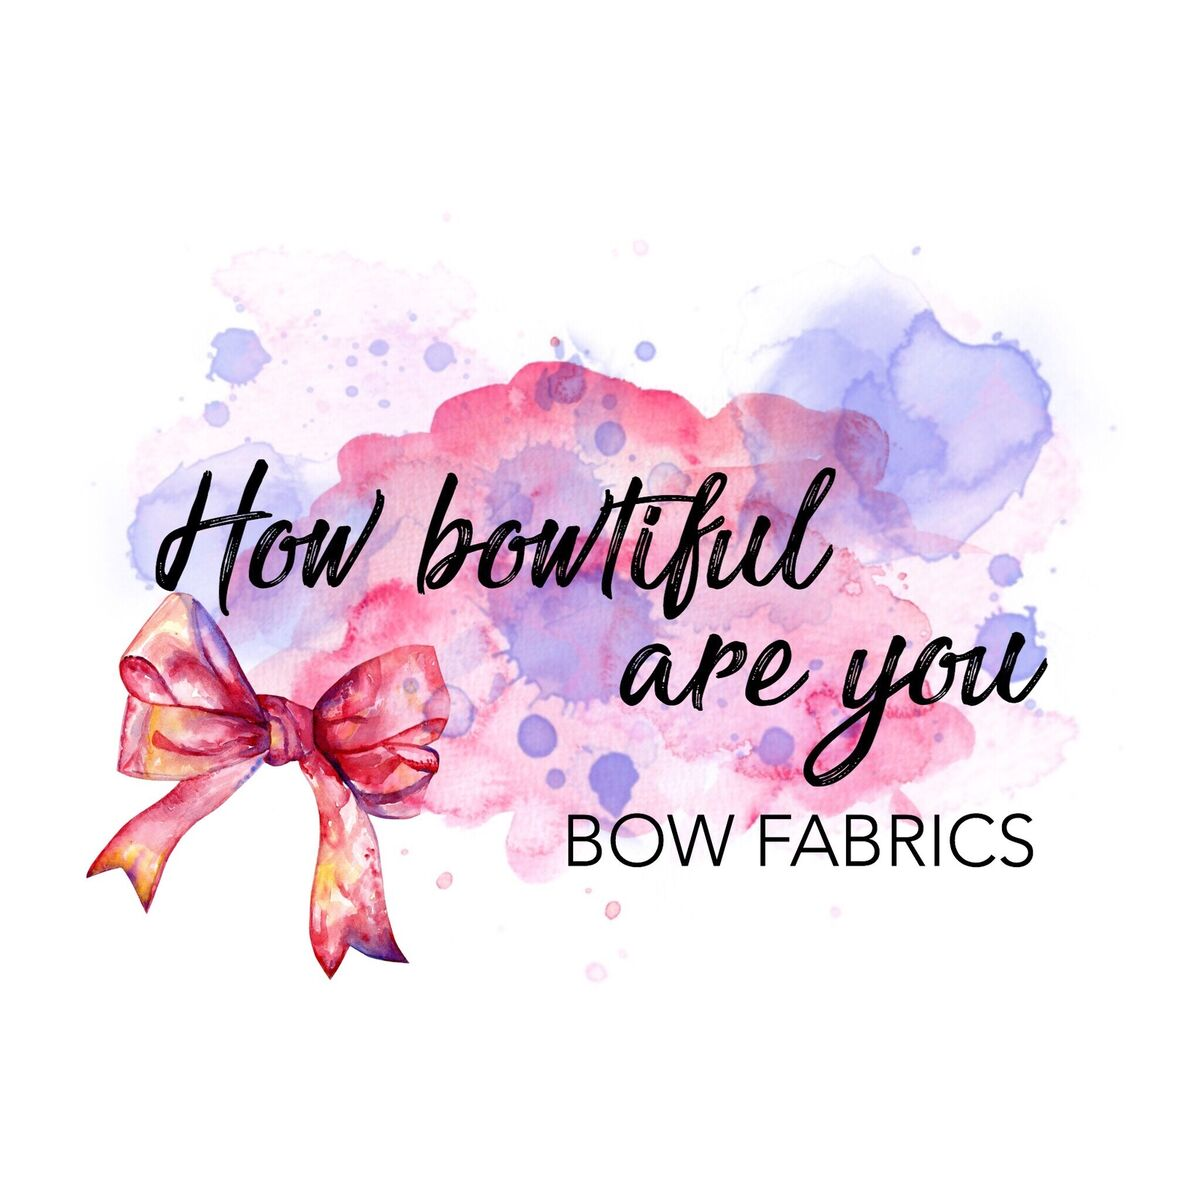 How Bowtiful Are You?